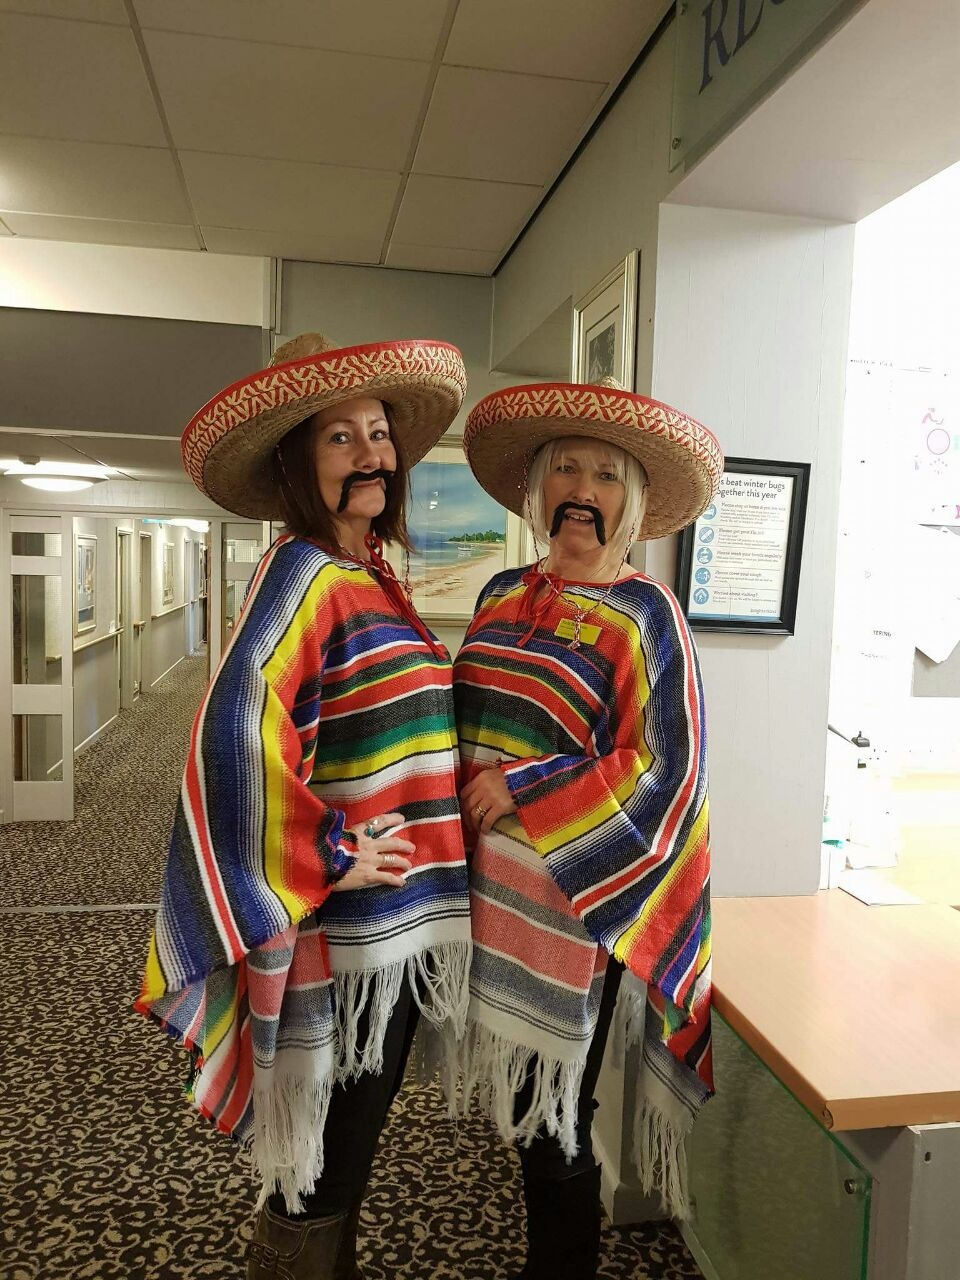 Team members Debs and Vicki in their ponchos and sombreros